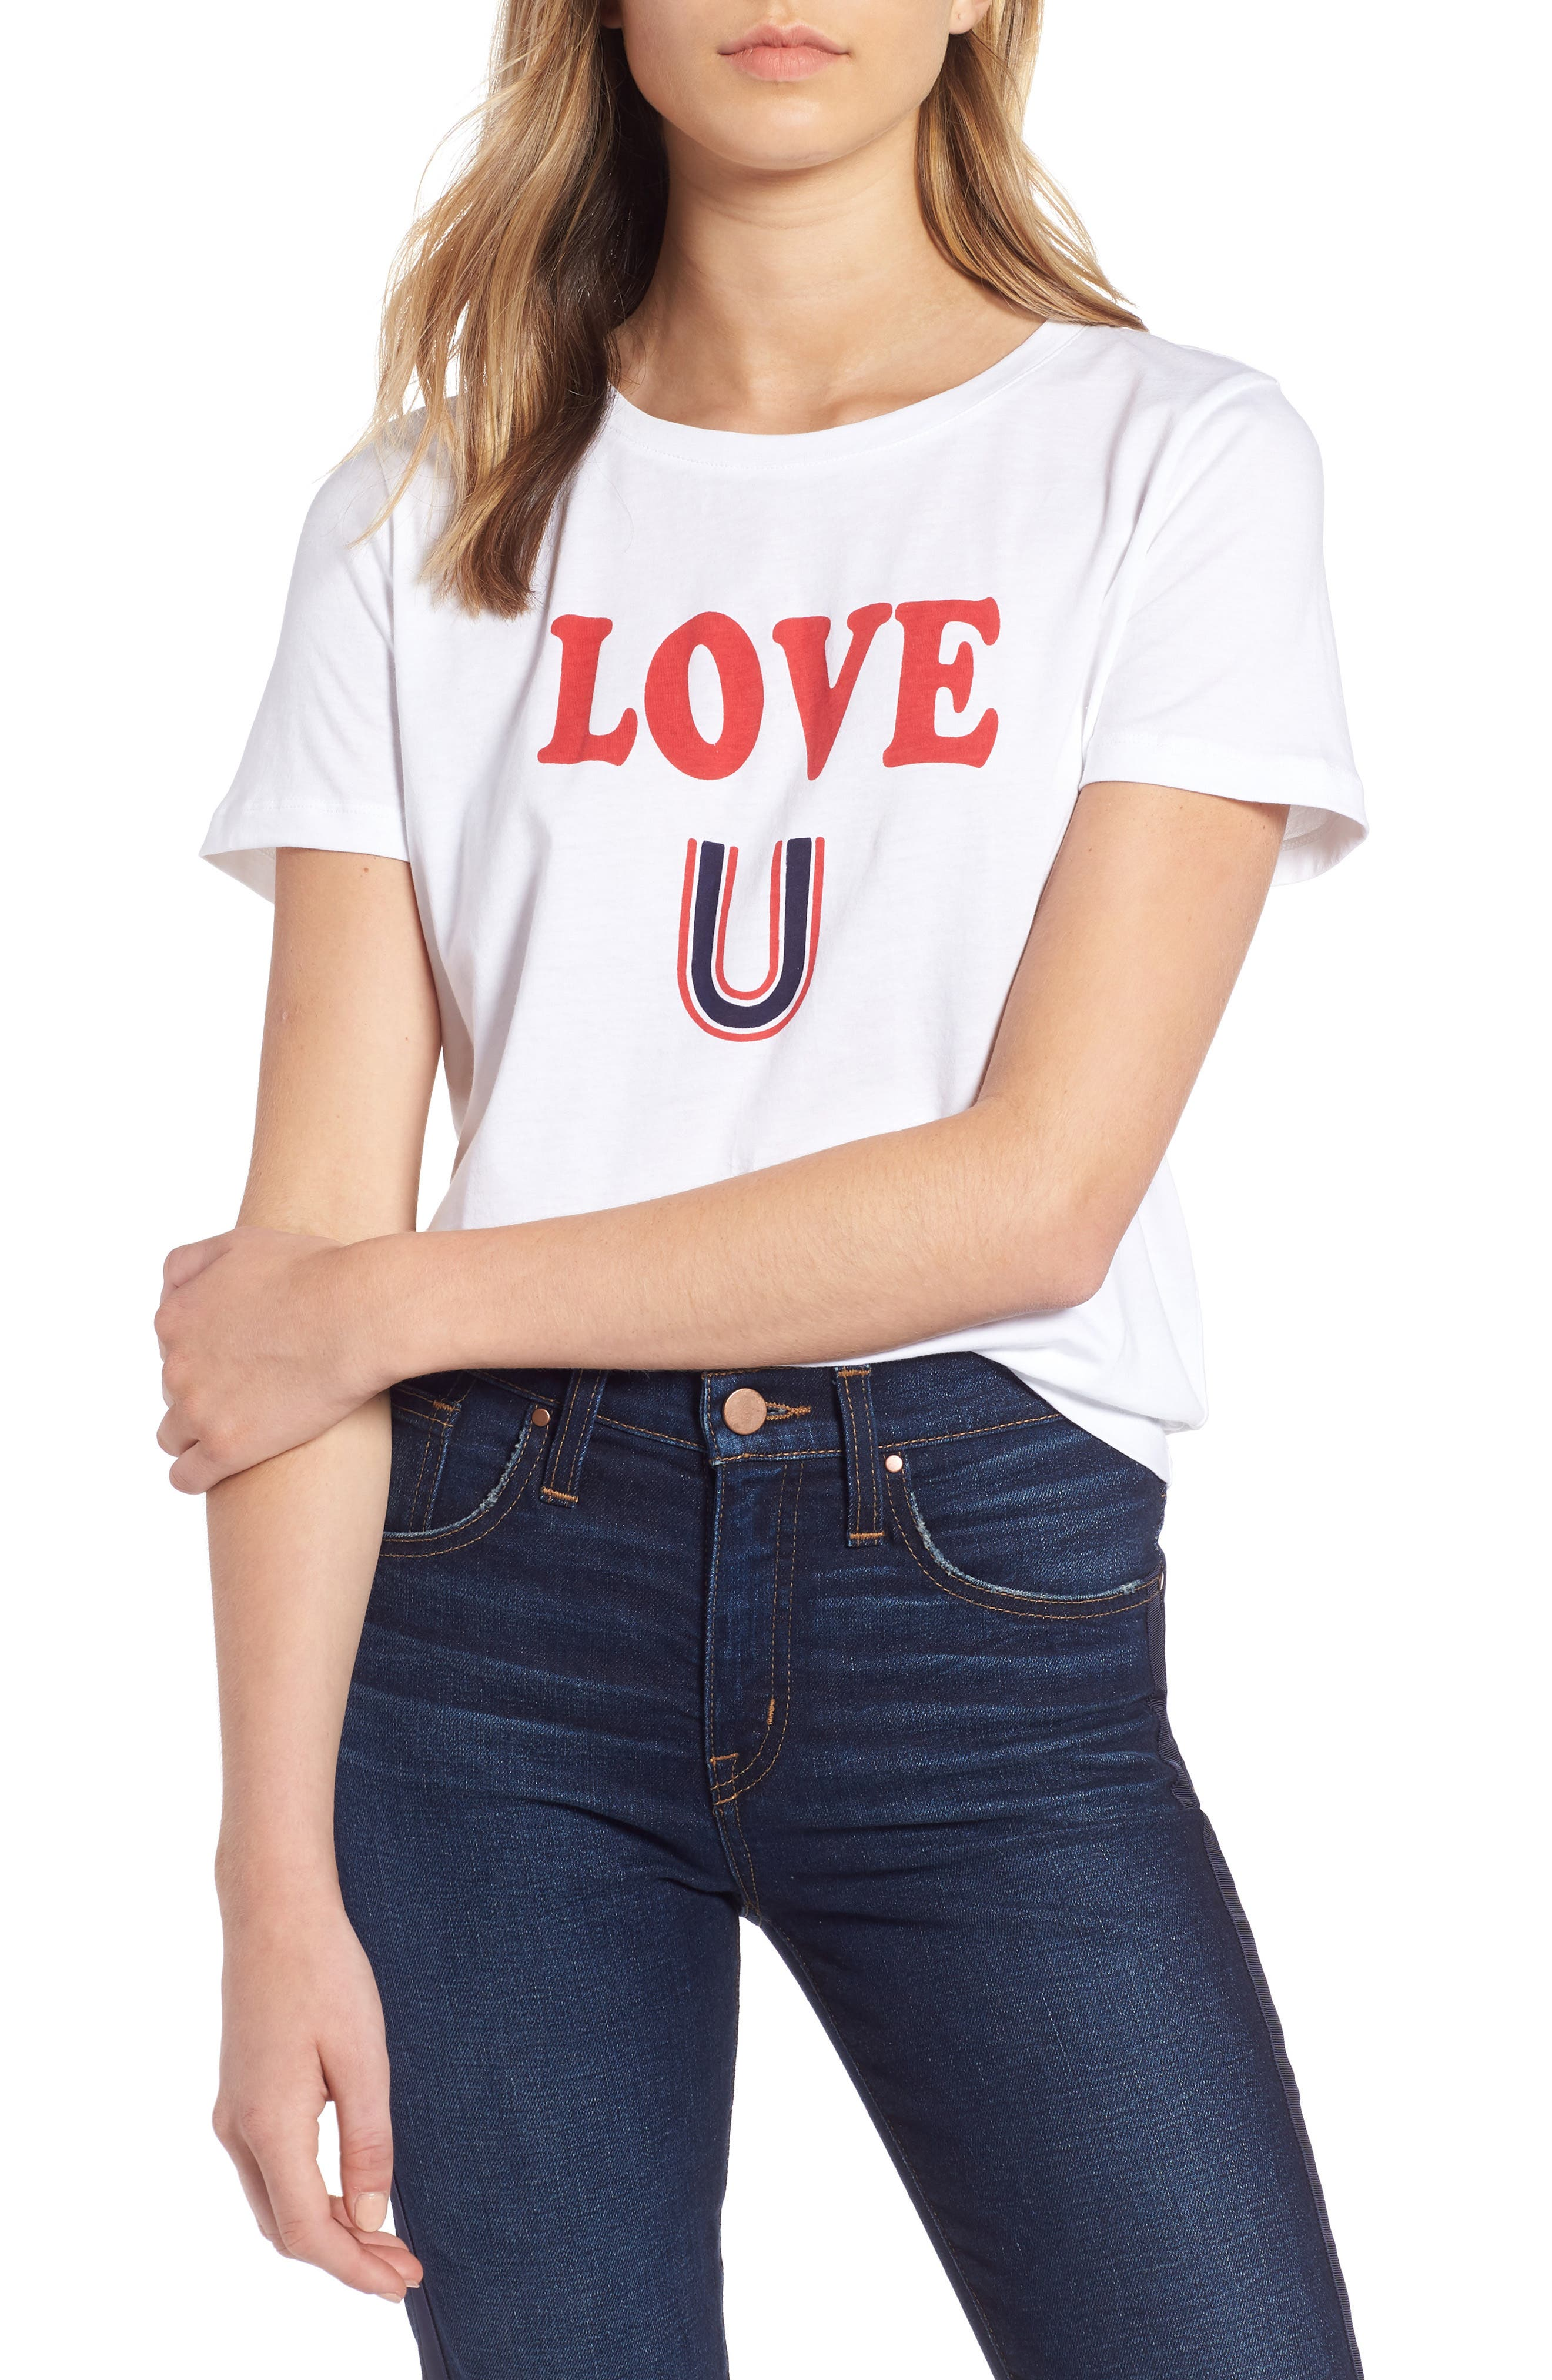 Short Sleeve Graphic Tee,                             Main thumbnail 1, color,                             WHITE- RED LOVE U